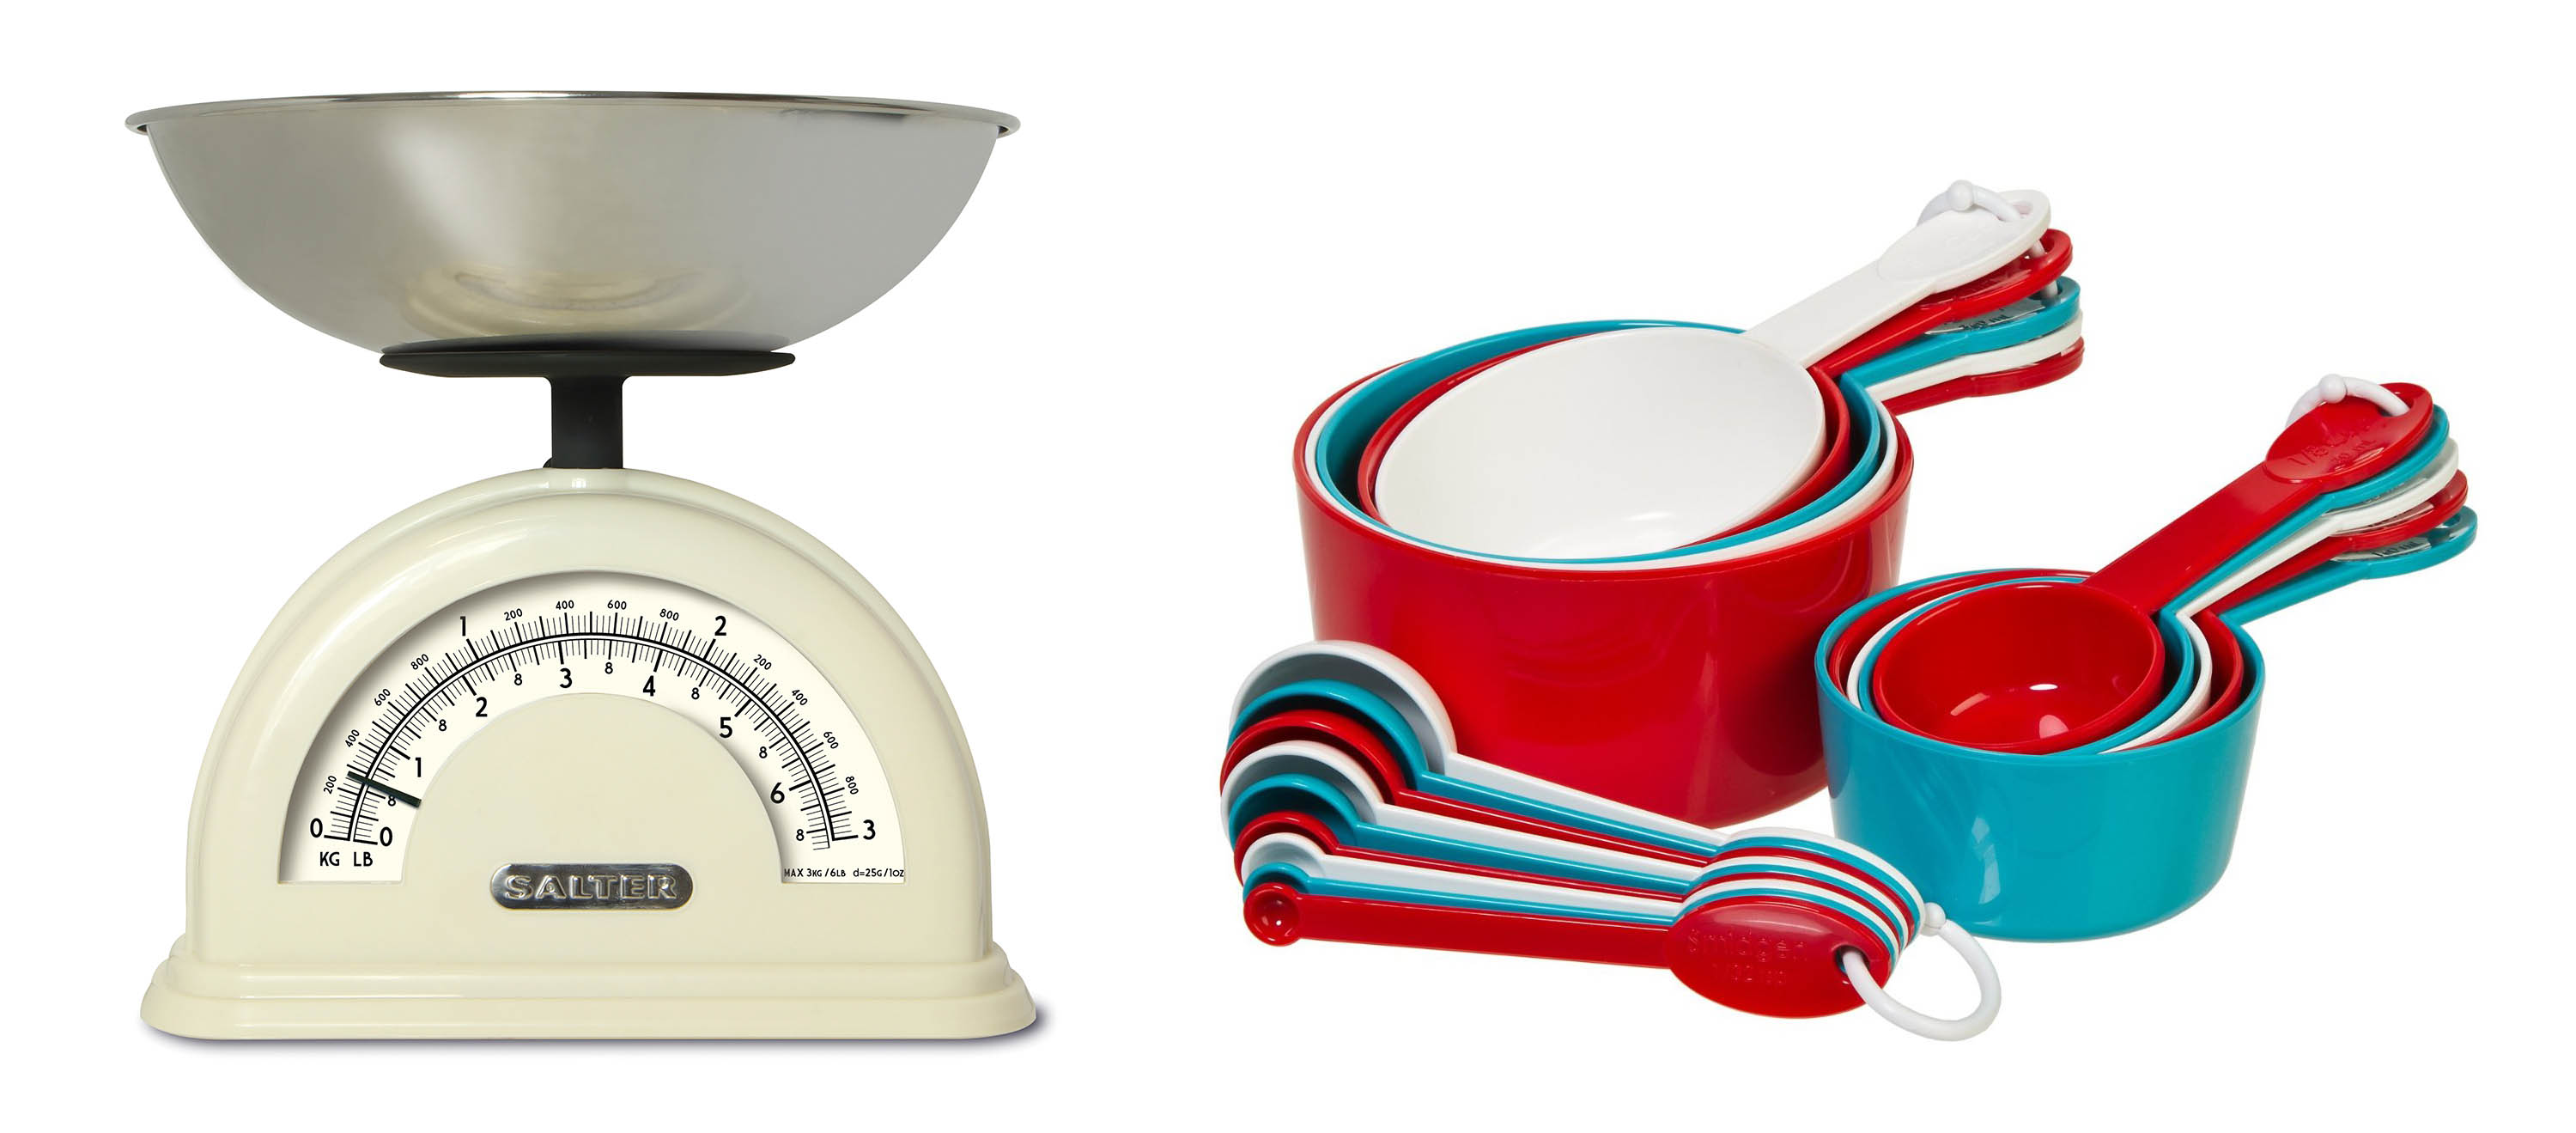 US Cups to ounces & grams for common ingredients.